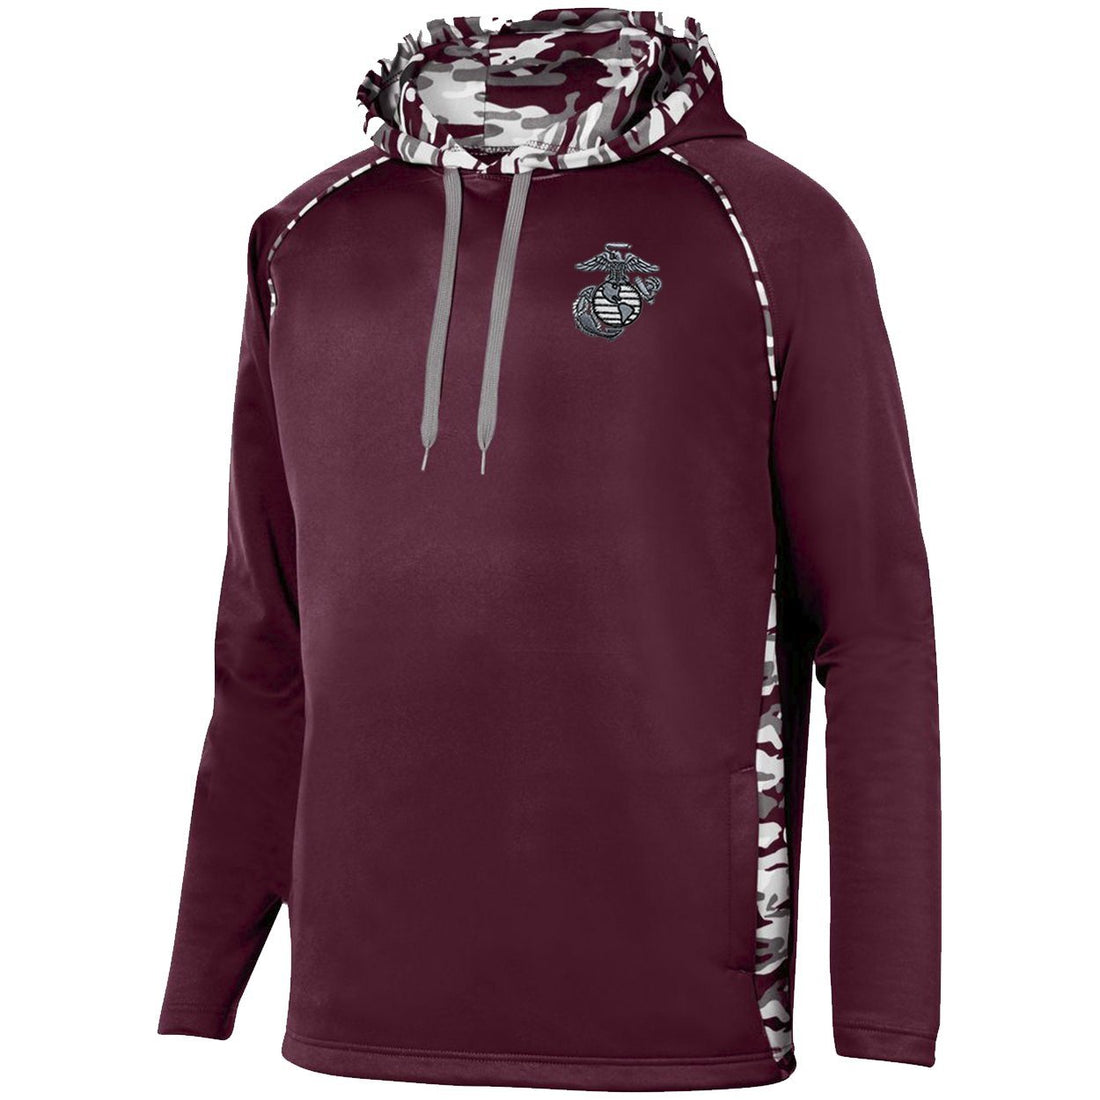 Maroon USMC hoodie with the eagle, globe, and anchor logo embroidered on the top corner from Marine Corps Direct.